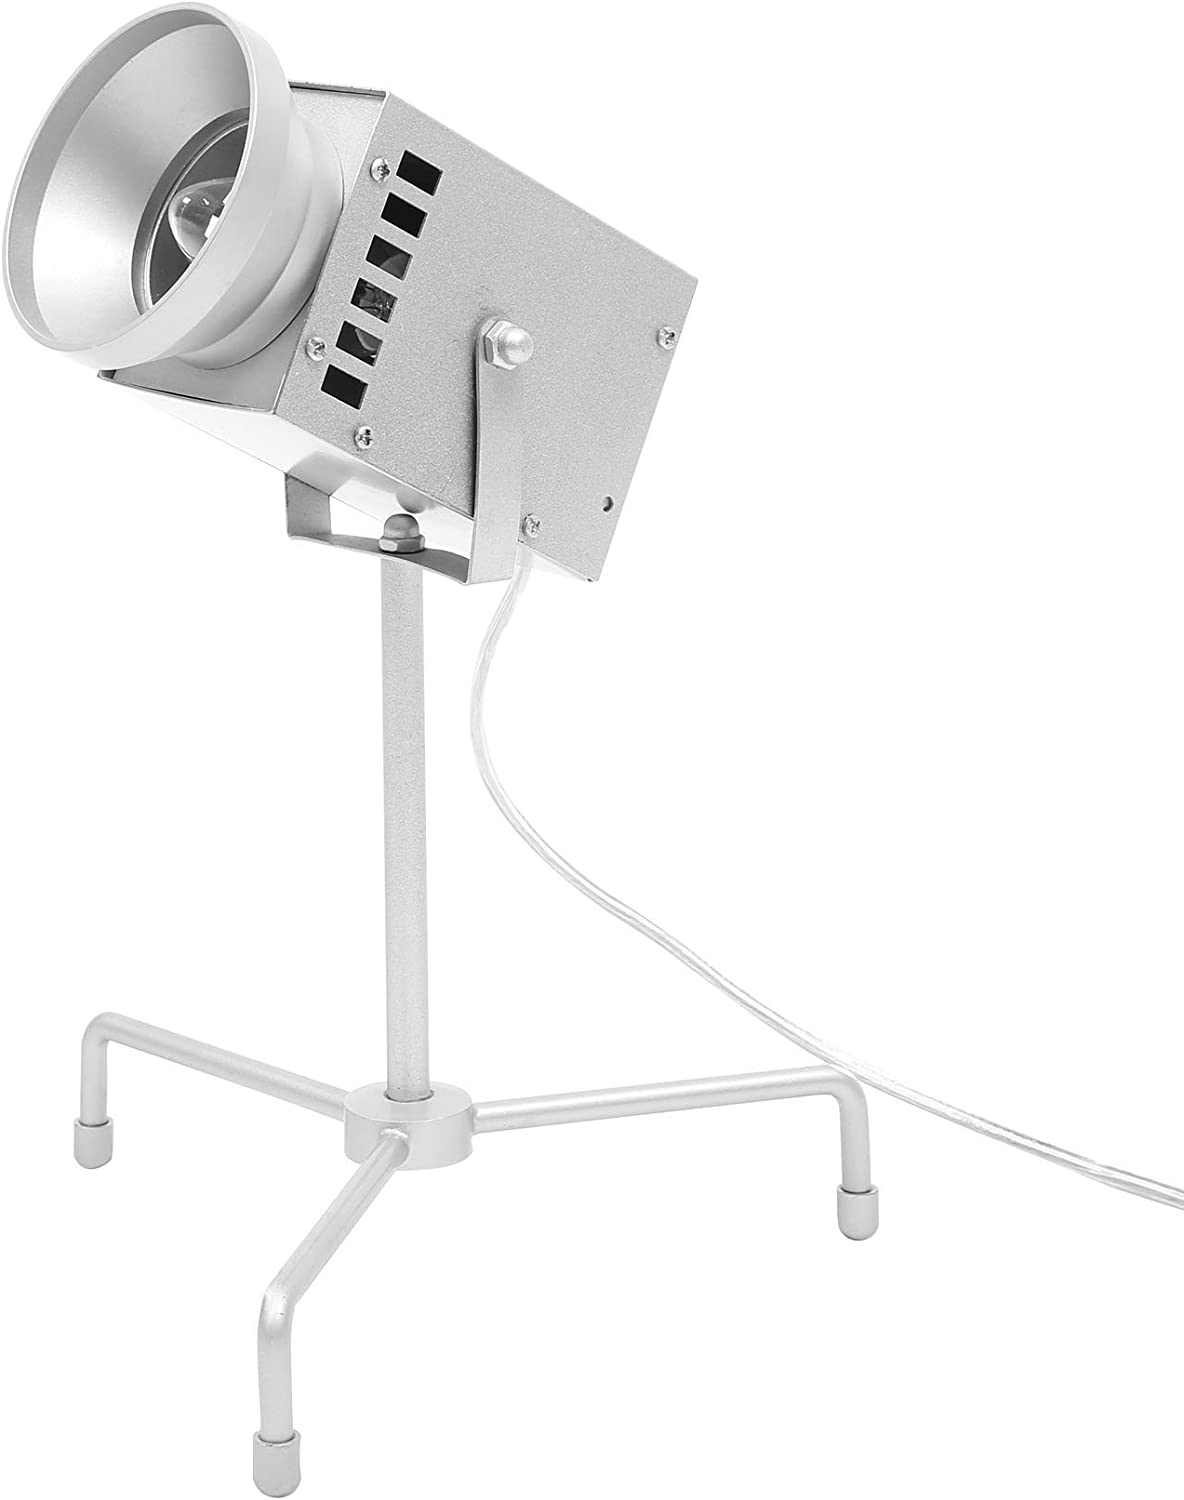 Euro Style Collection Cannes Metal Body Cinema Design Table Lamp, Silver